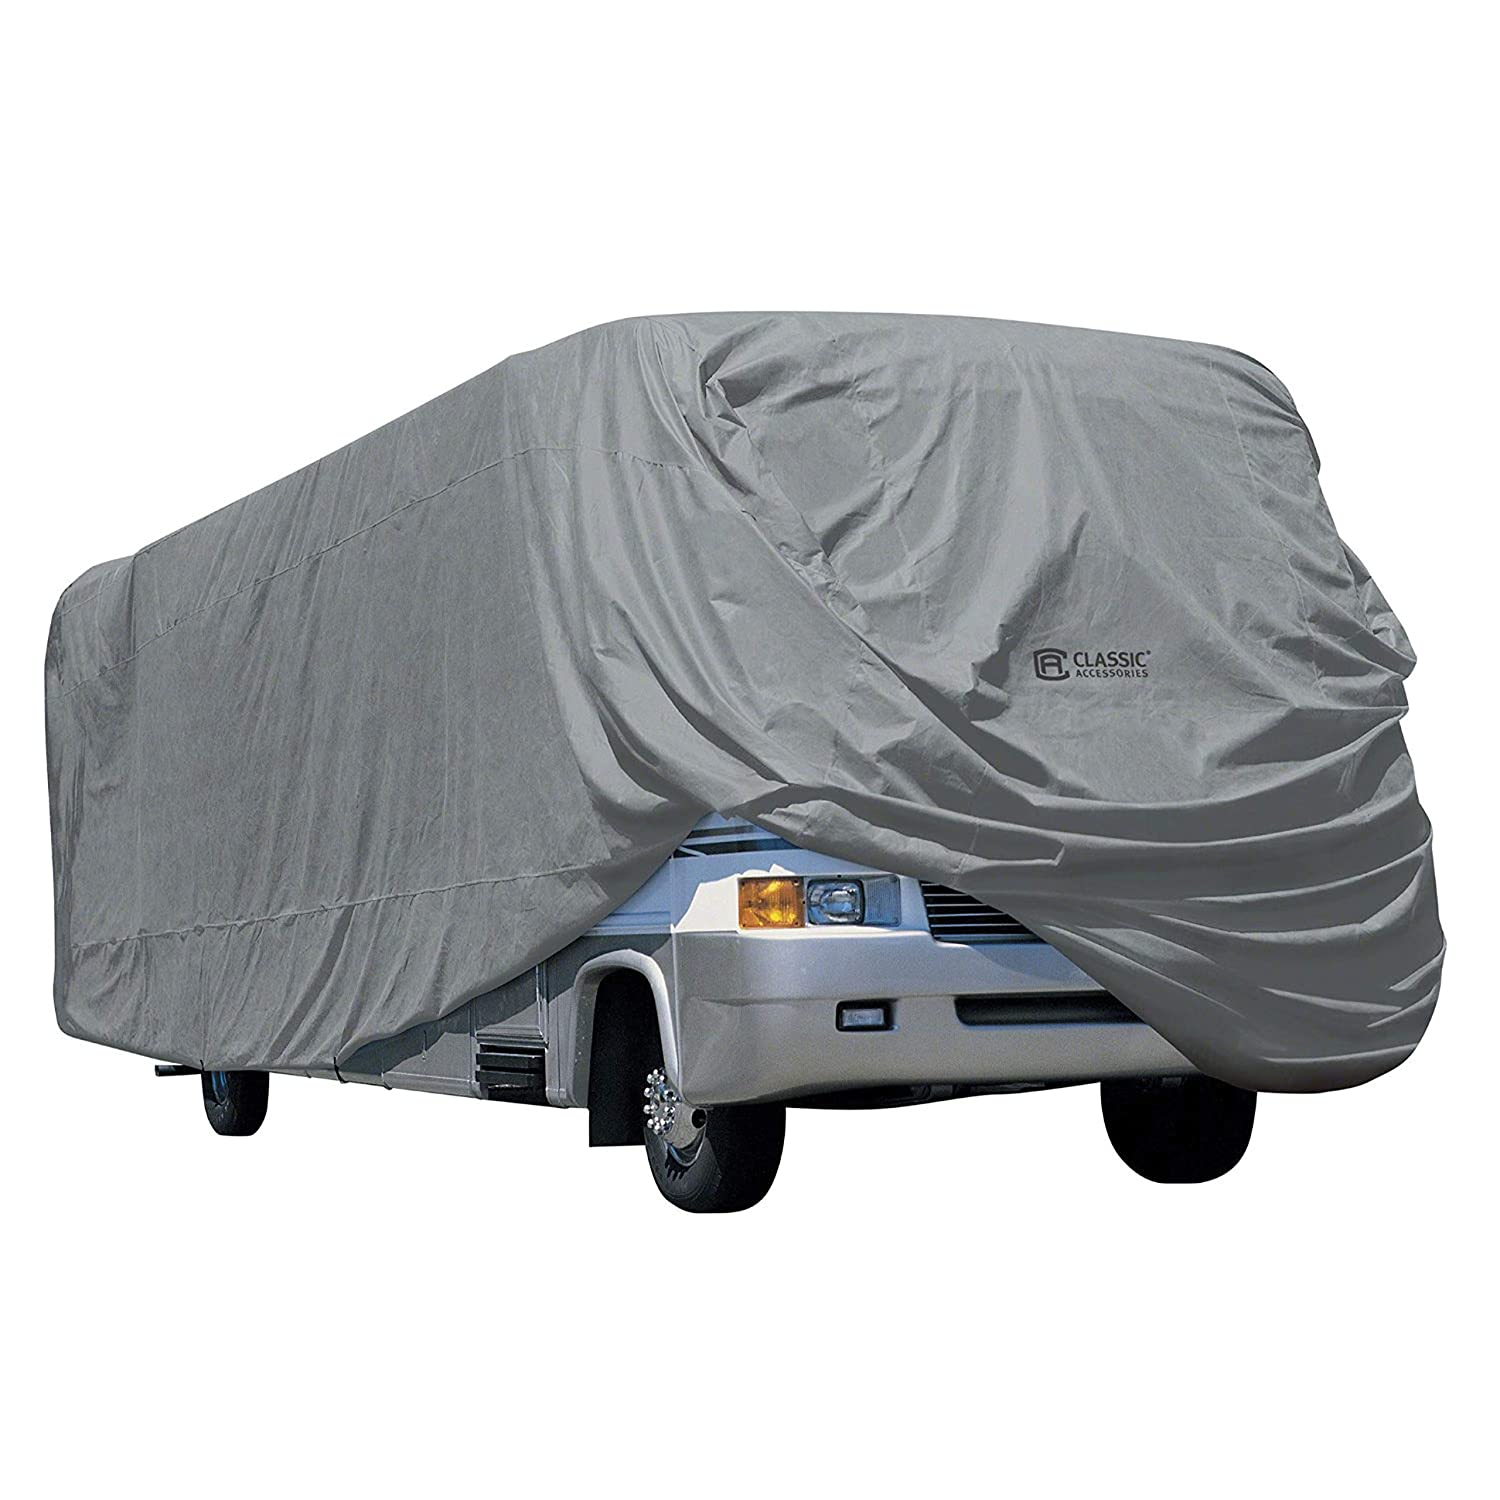 Classic Accessories 80-163-181001-00 Overdrive PolyPro I Cover for 30' to 33' Class A RVs CLASSIC ACCESSORIES INC